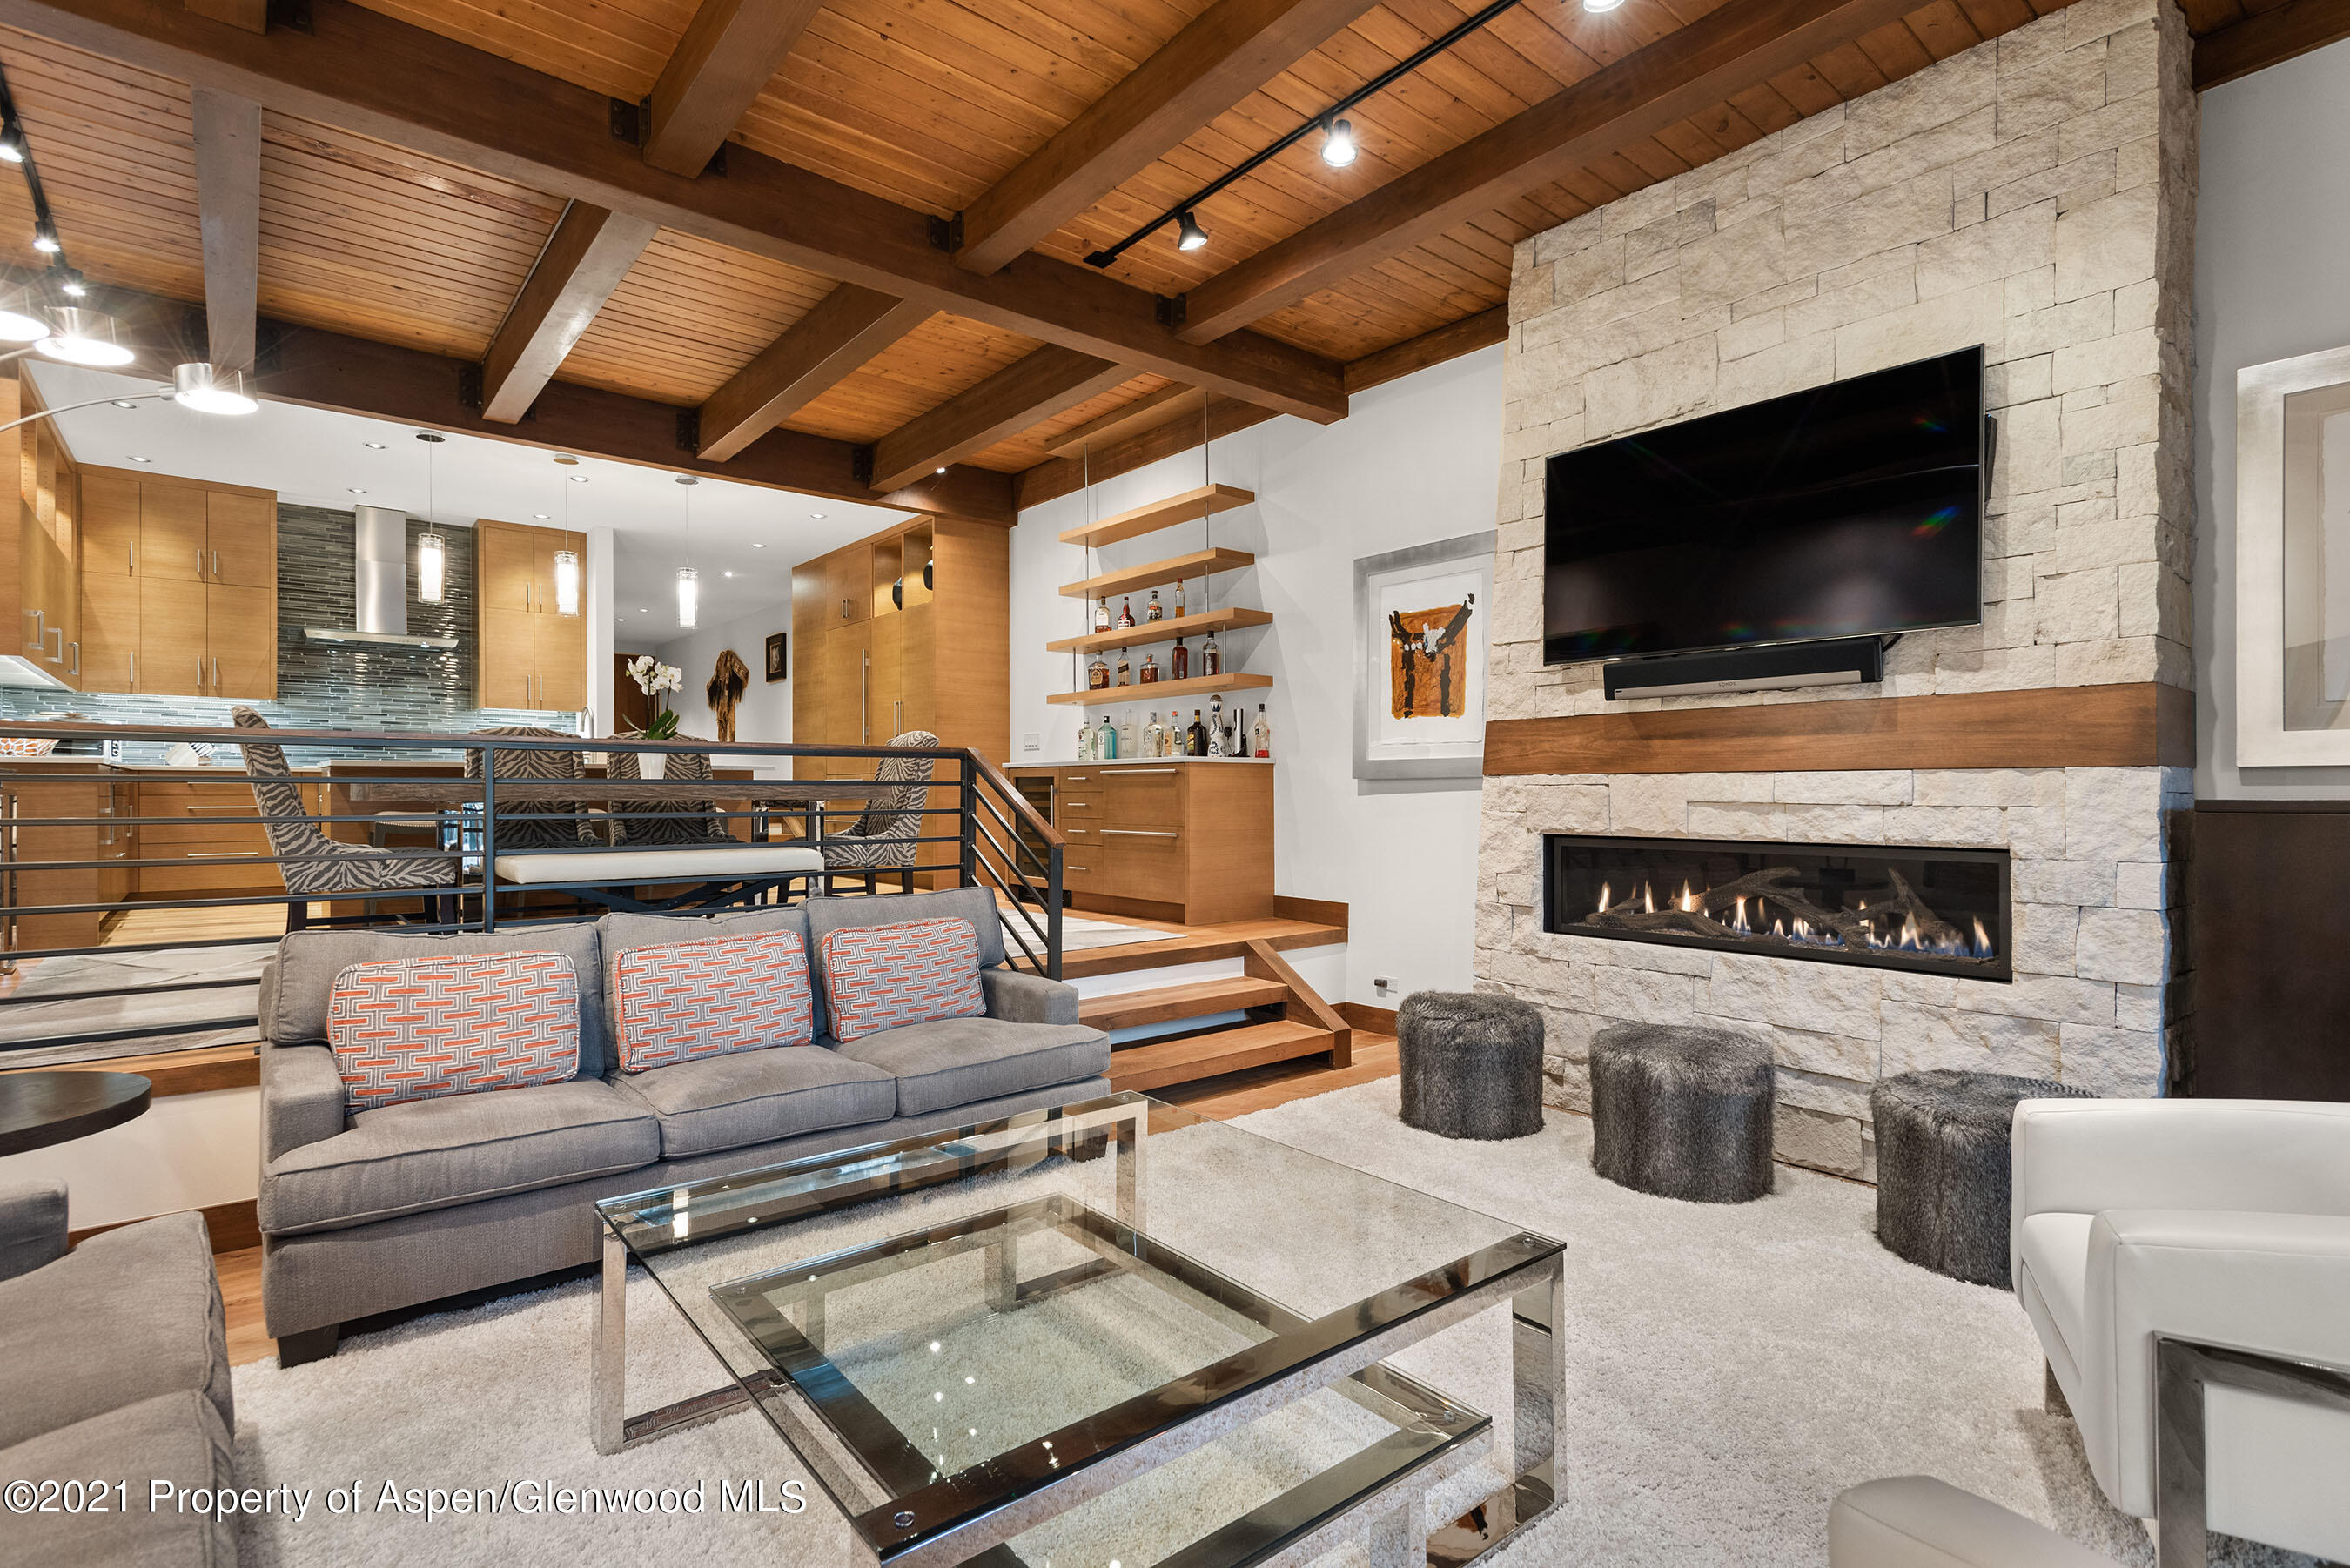 This ski access townhome was remodeled to the studs and offers an extraordinary mountain modern interior with high end finishes.  Ridge #10 is more than 2100 sq. feet, 3 bedrooms, and 3 bathrooms; in addition to reserved covered parking, and ample storage, there is space for everyone to enjoy the phenomenal location that comes with owning at the Ridge and the sought after ''Upper Phase'' which is adjacent to the ski access trail, pool and spa.   The warm and inviting spacious rooms, vaulted upstairs ceilings, and designer furnishings make this a true luxury townhome experience in the heart of Snowmass Village.